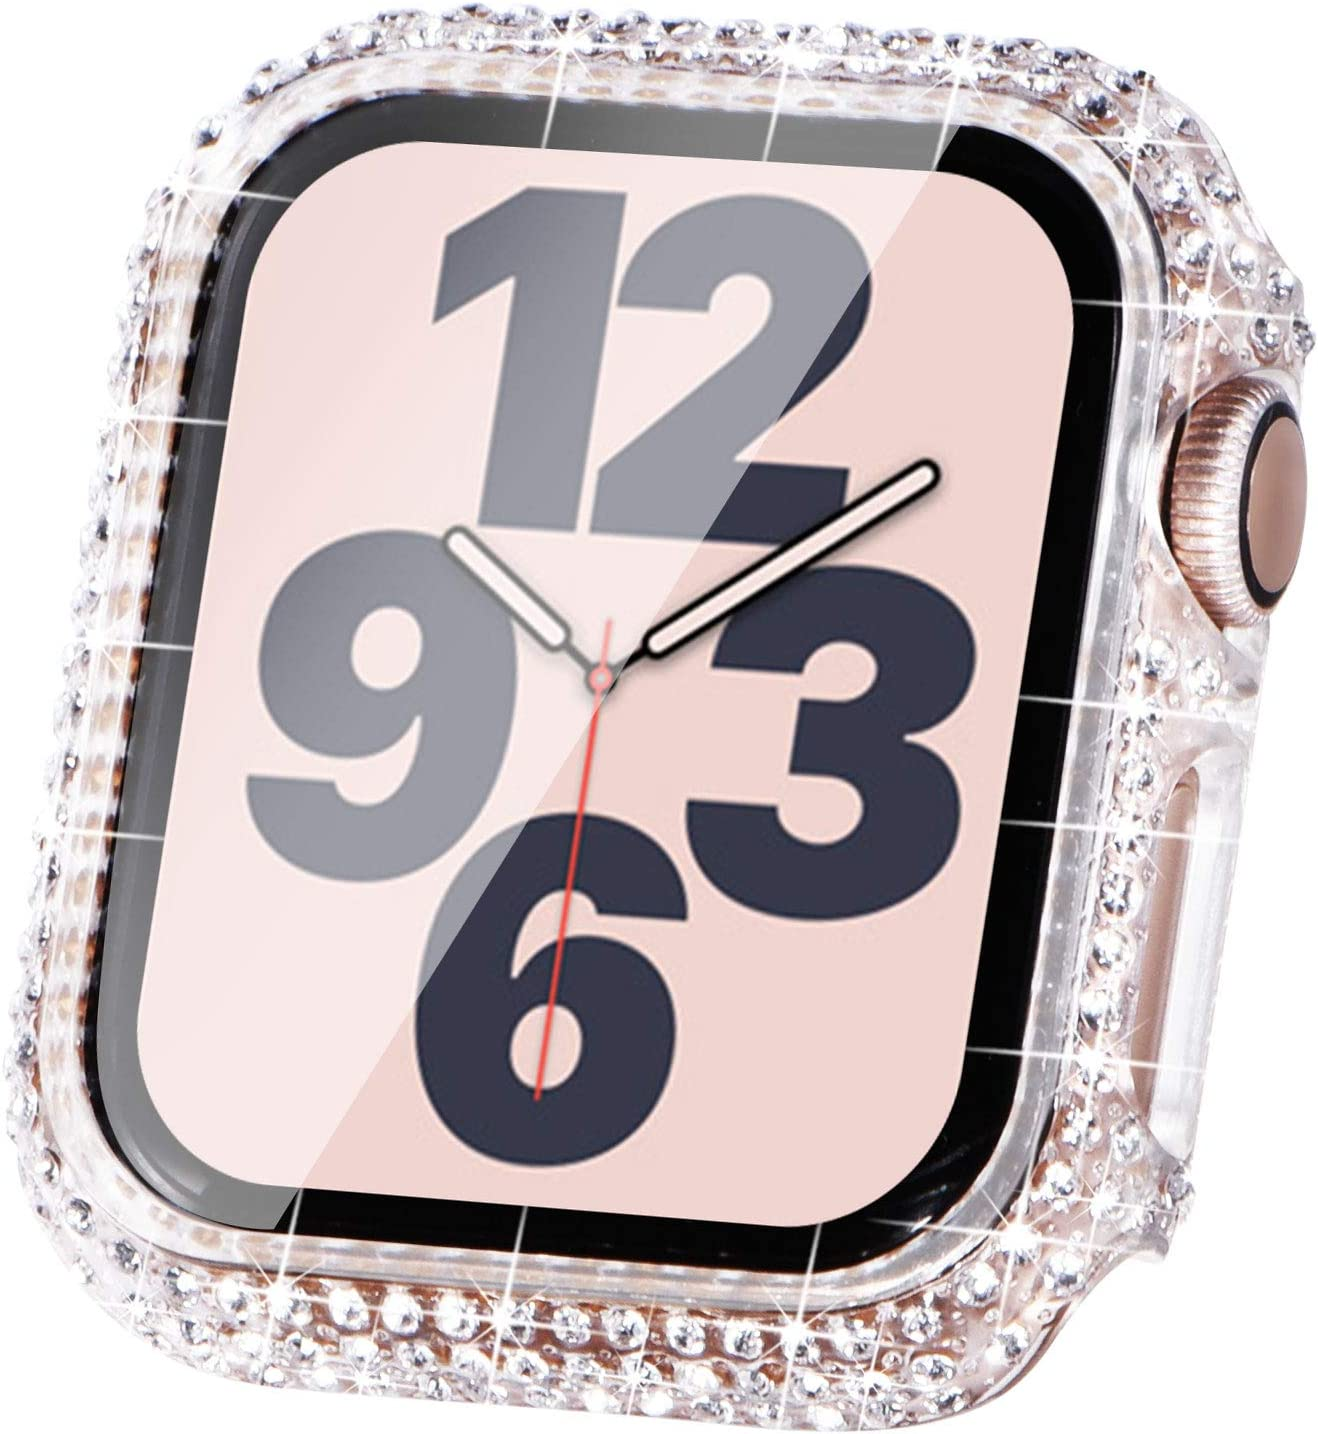 Surace Compatible with Apple Watch Case 40mm for Apple Watch Series 6/5/4/3/2/1, Bling Cases with Over 200 Crystal Diamond Protective Cover Bumper for 38mm 40mm 42mm 44mm (40mm, Clear)